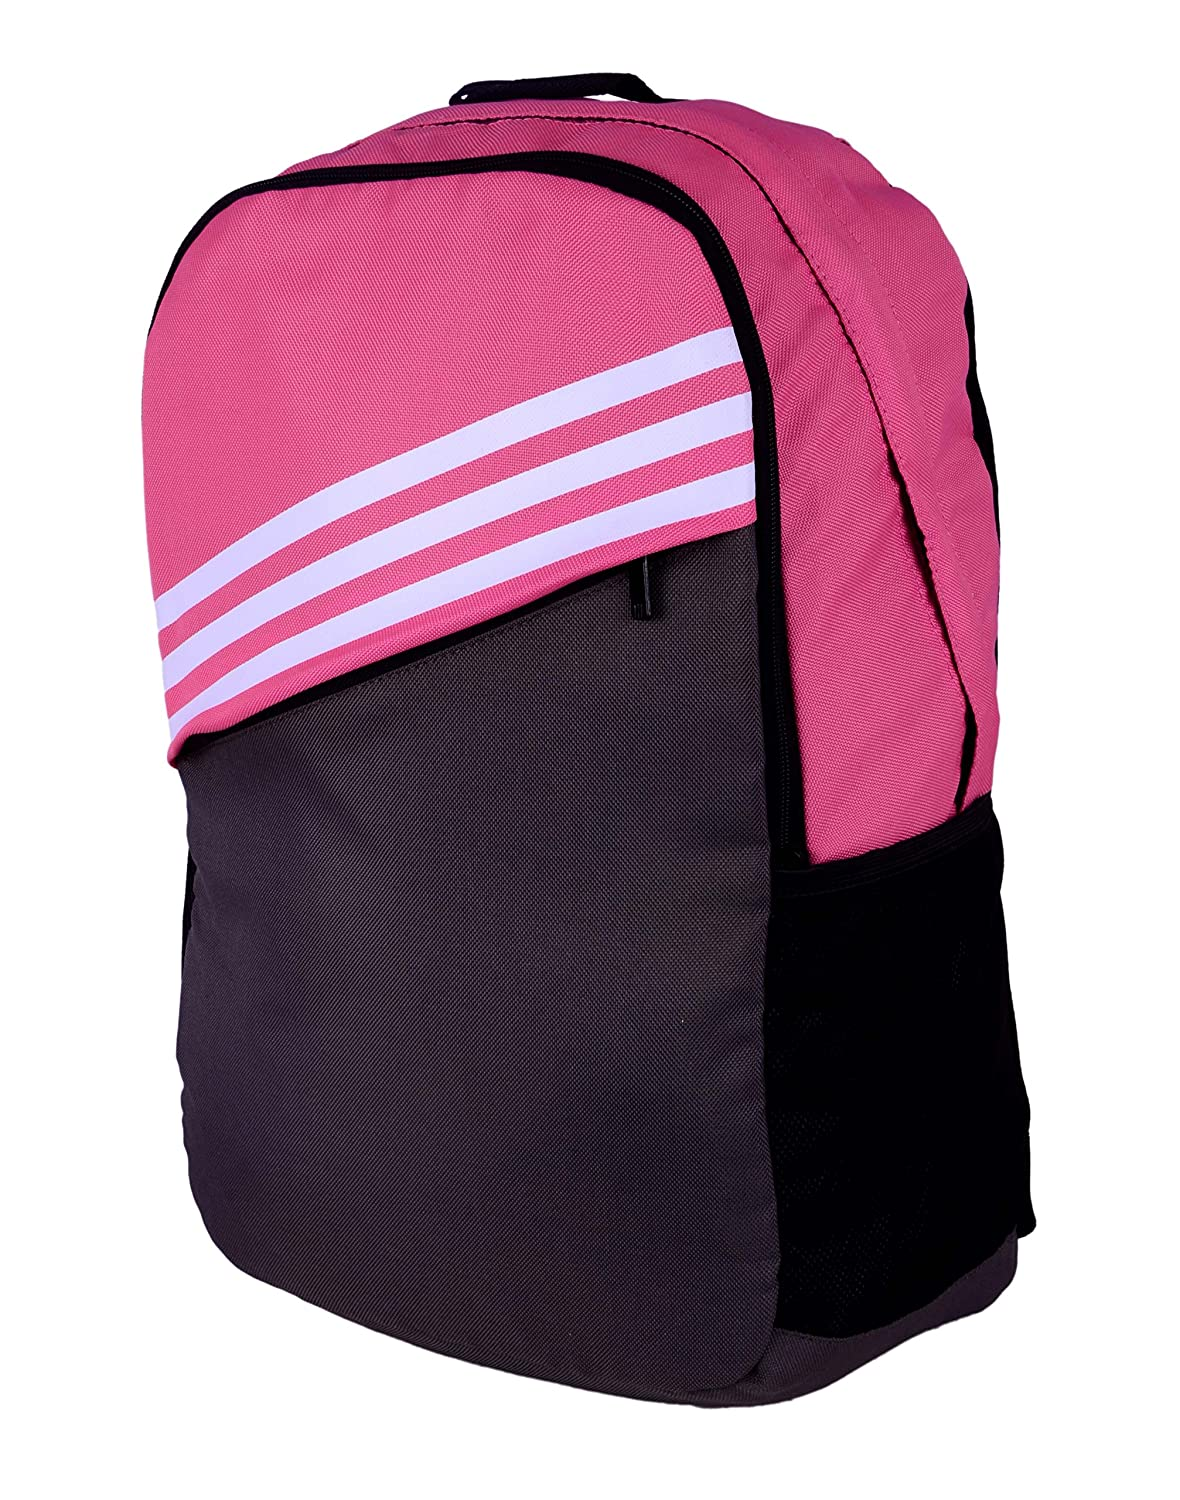 adidas St BP 2A Polyester Backpack, Men s (Semi Solar Pink and Black)   Amazon.in  Bags, Wallets   Luggage 658fa7af09